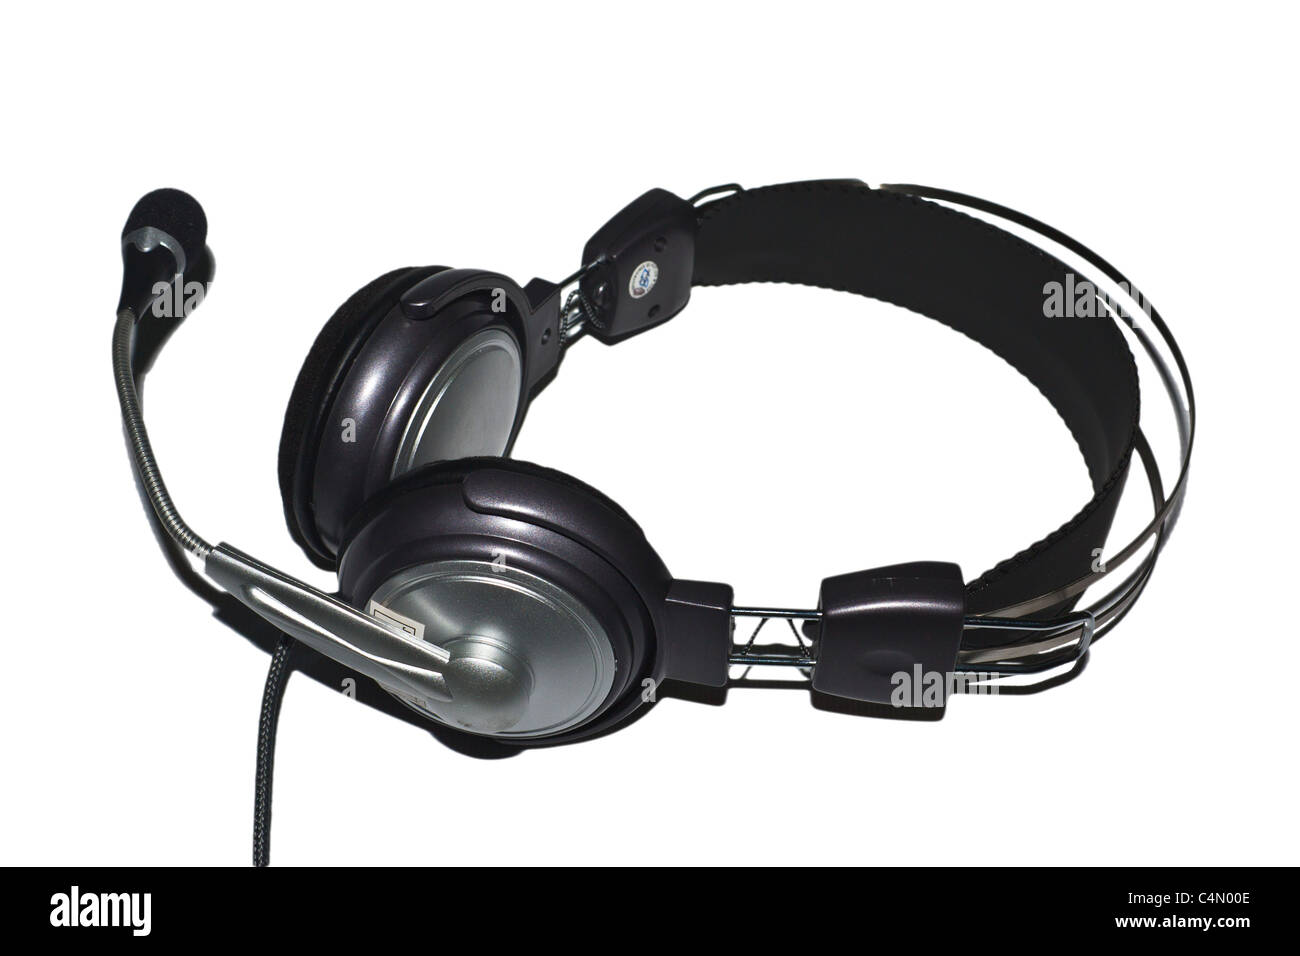 A headset with microphone in white background - Stock Image